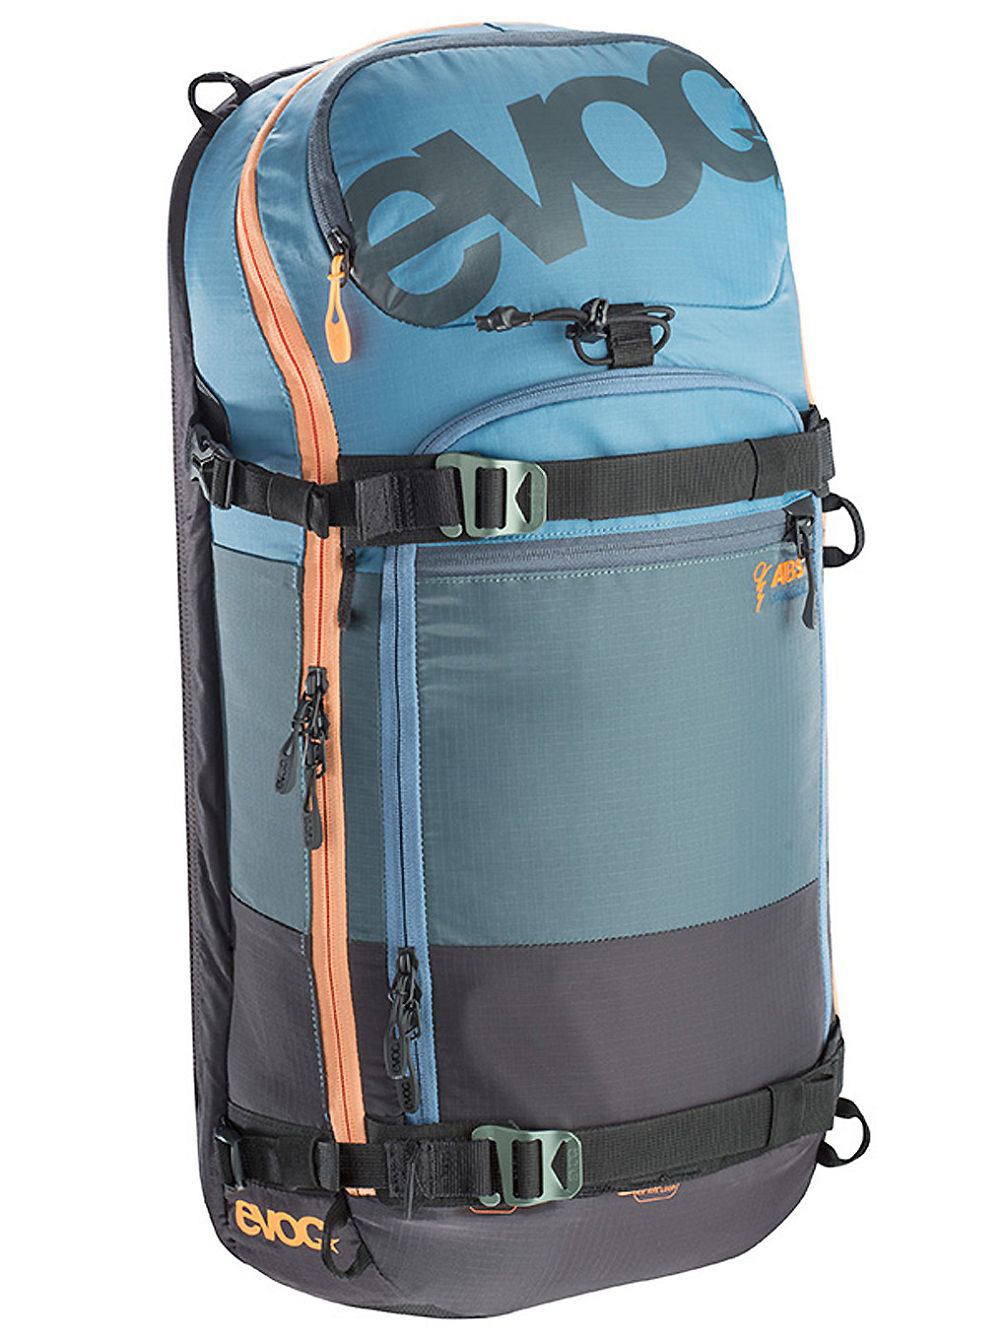 zip-on-abs-pro-team-20l-backpack